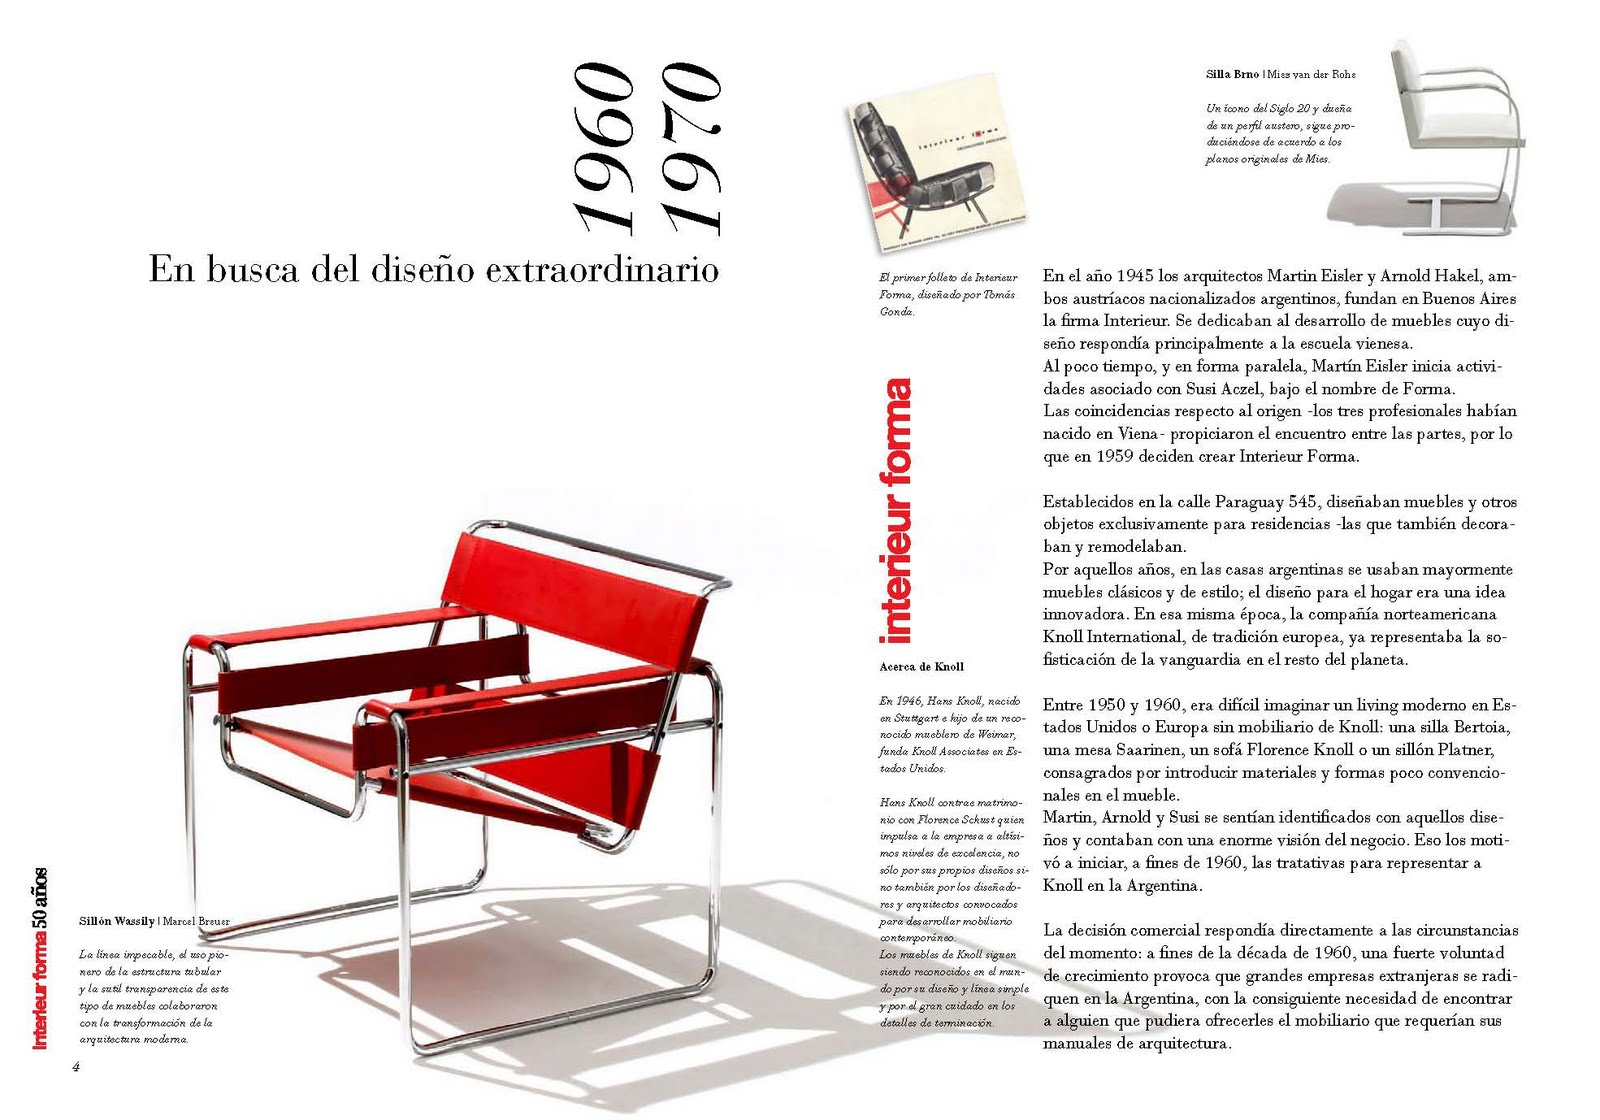 The lovely writer libro 50 aniversario interieur forma for Interieur forma